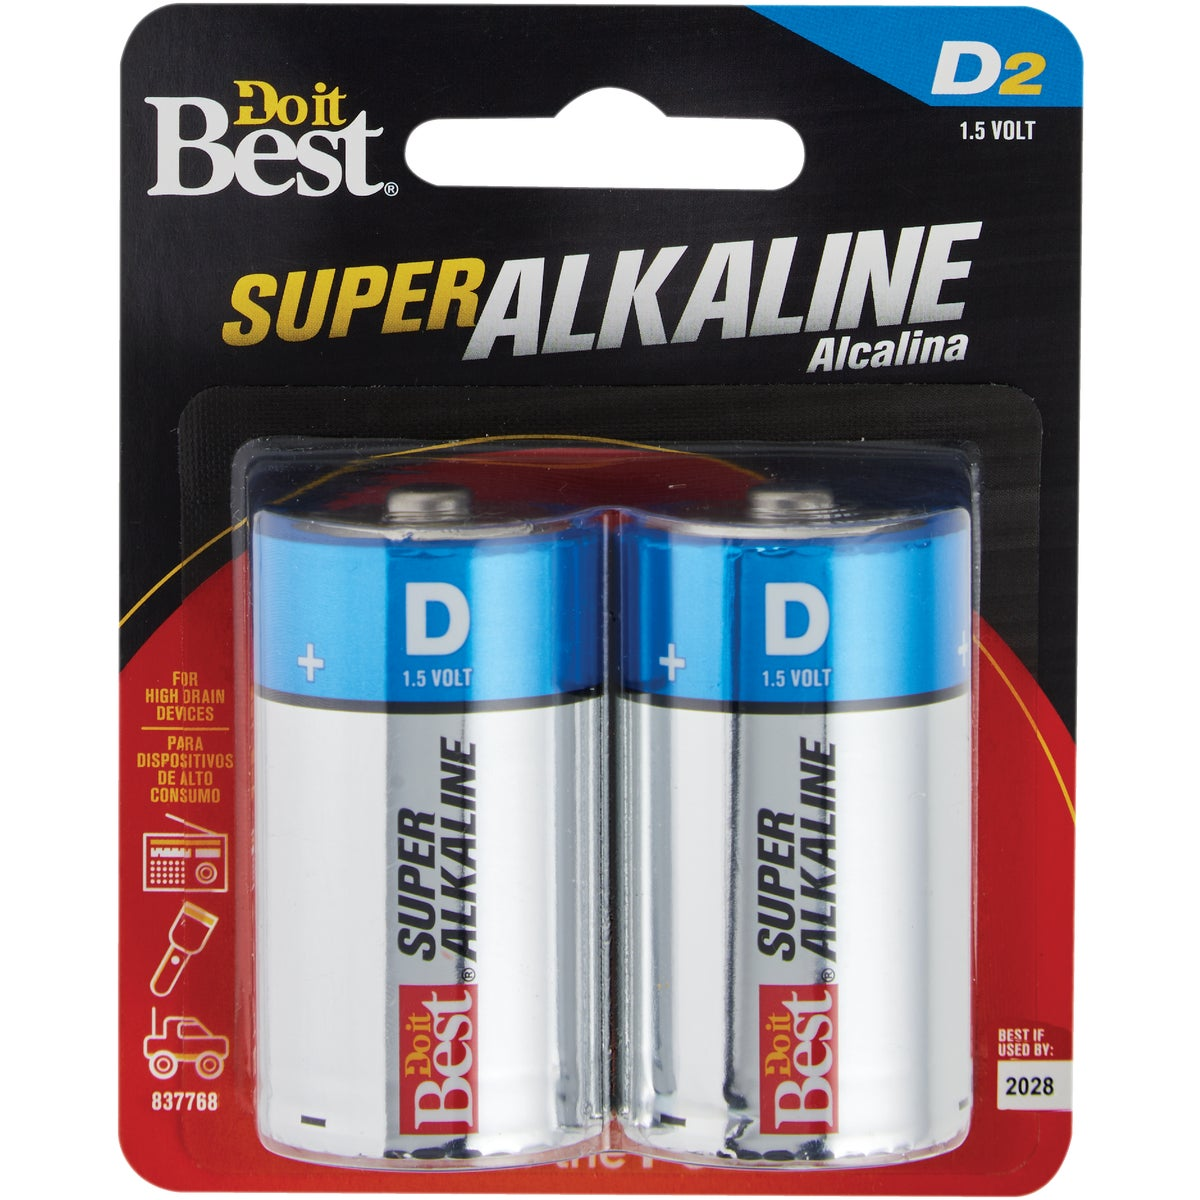 2PK DIB D ALK BATTERY